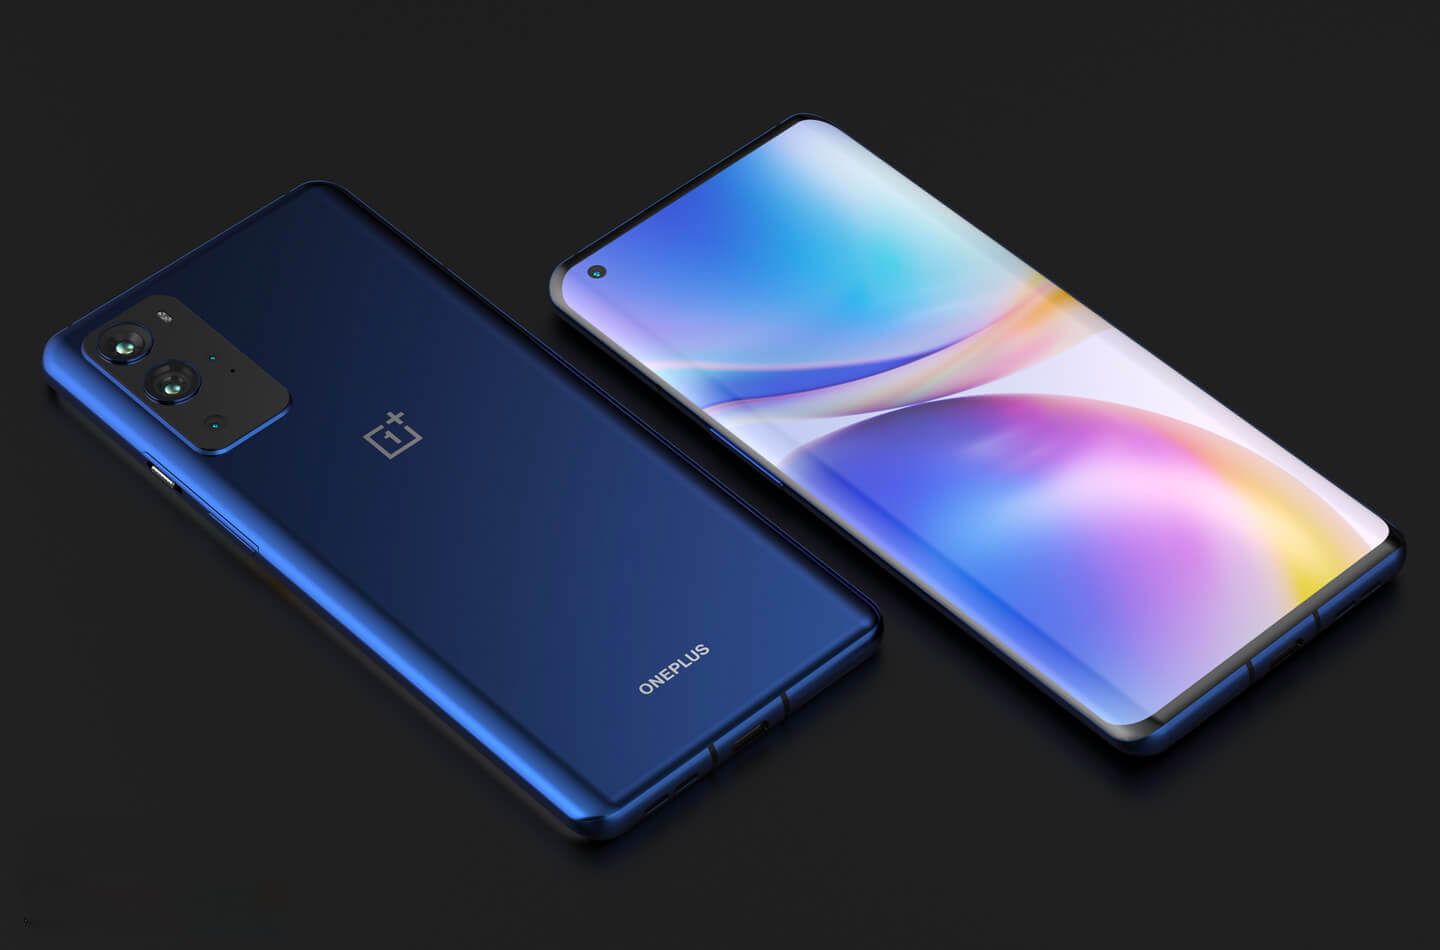 Partnering With Hasselblad, OnePlus 9 Launches March 23, 2021